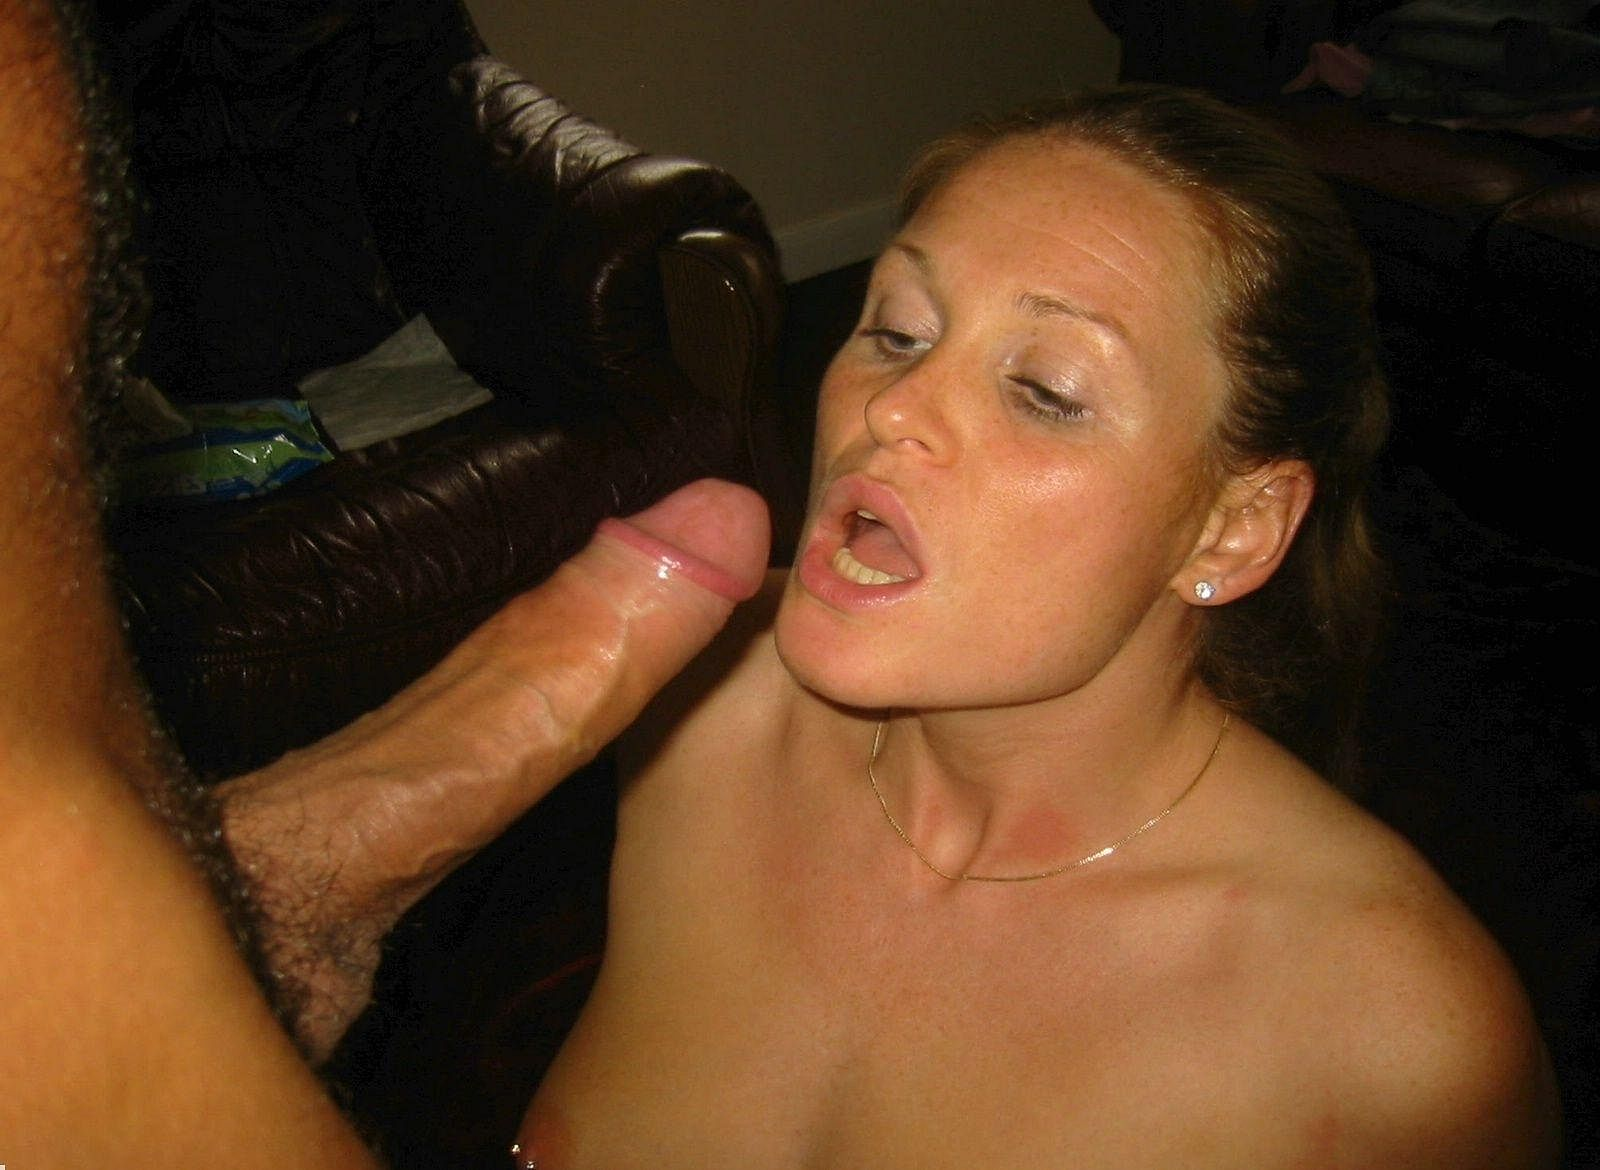 Just looking Huge Tranny Monster Cocks pussy. like